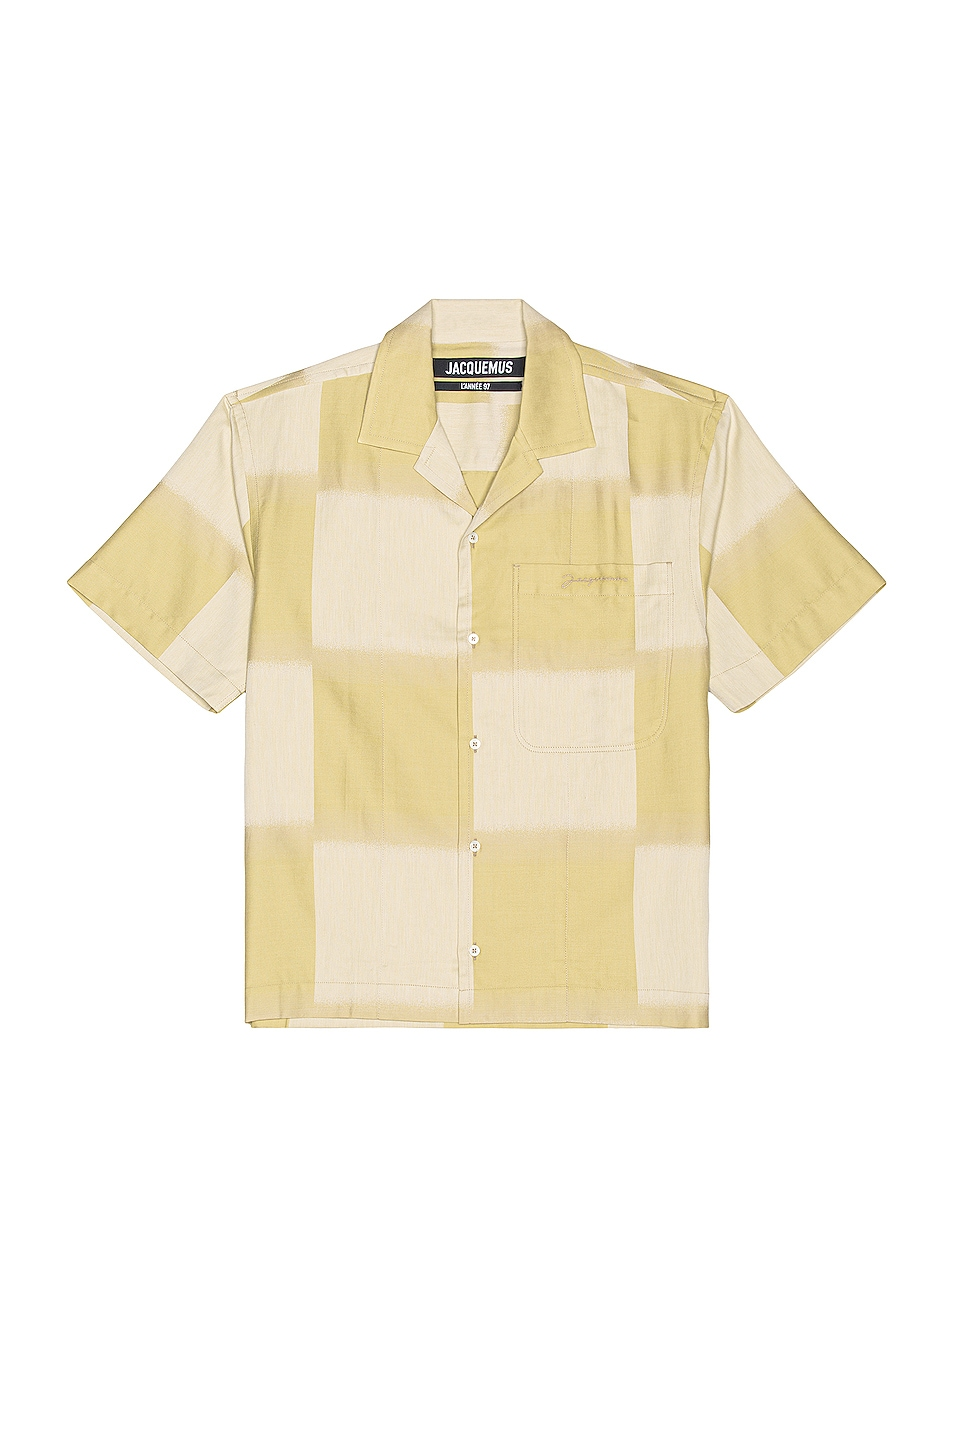 Image 1 of JACQUEMUS Jean Short Sleeve Button Down in Khaki Squares